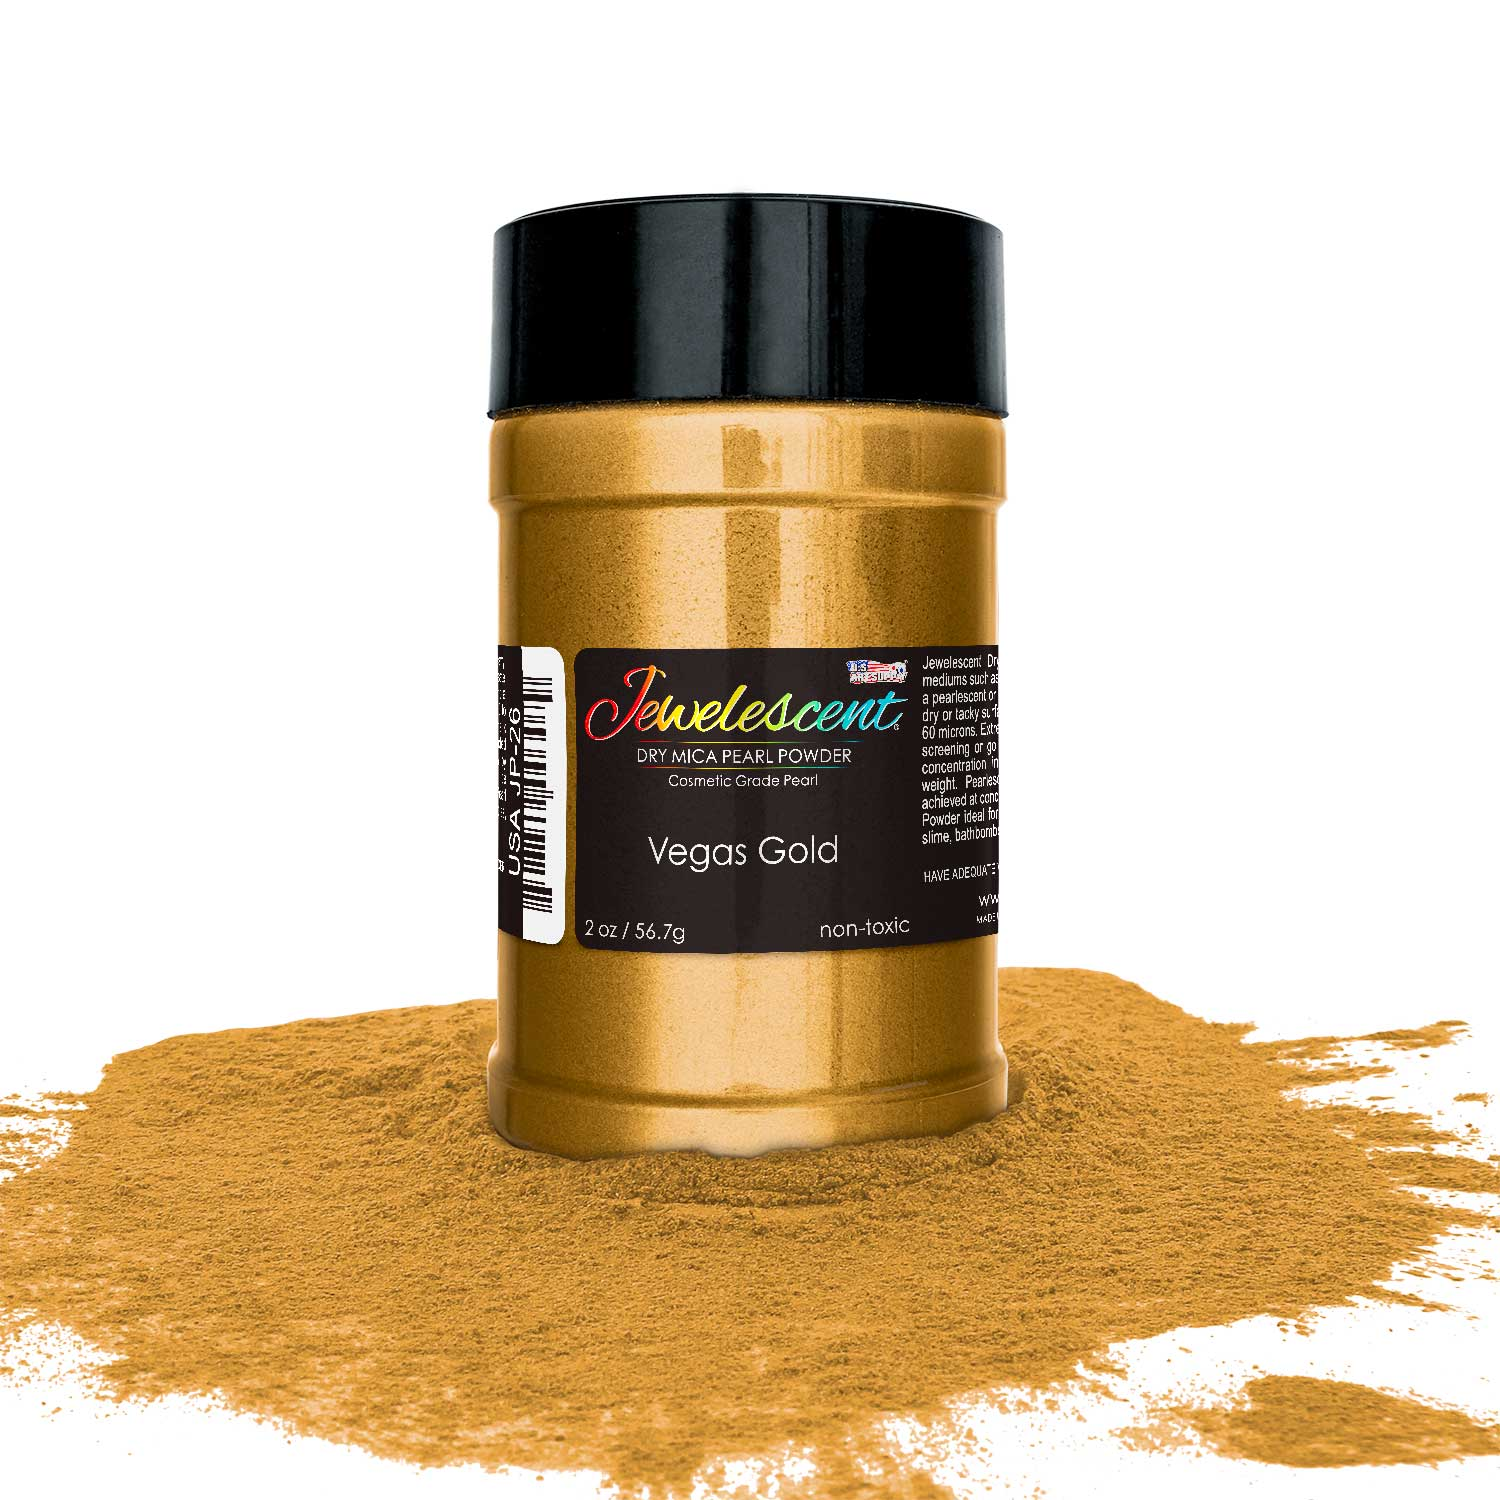 U.S. Art Supply Jewelescent Vegas Gold Mica Pearl Powder Pigment, 2 oz (57g) Bottle - Non-Toxic Metallic Color Dye